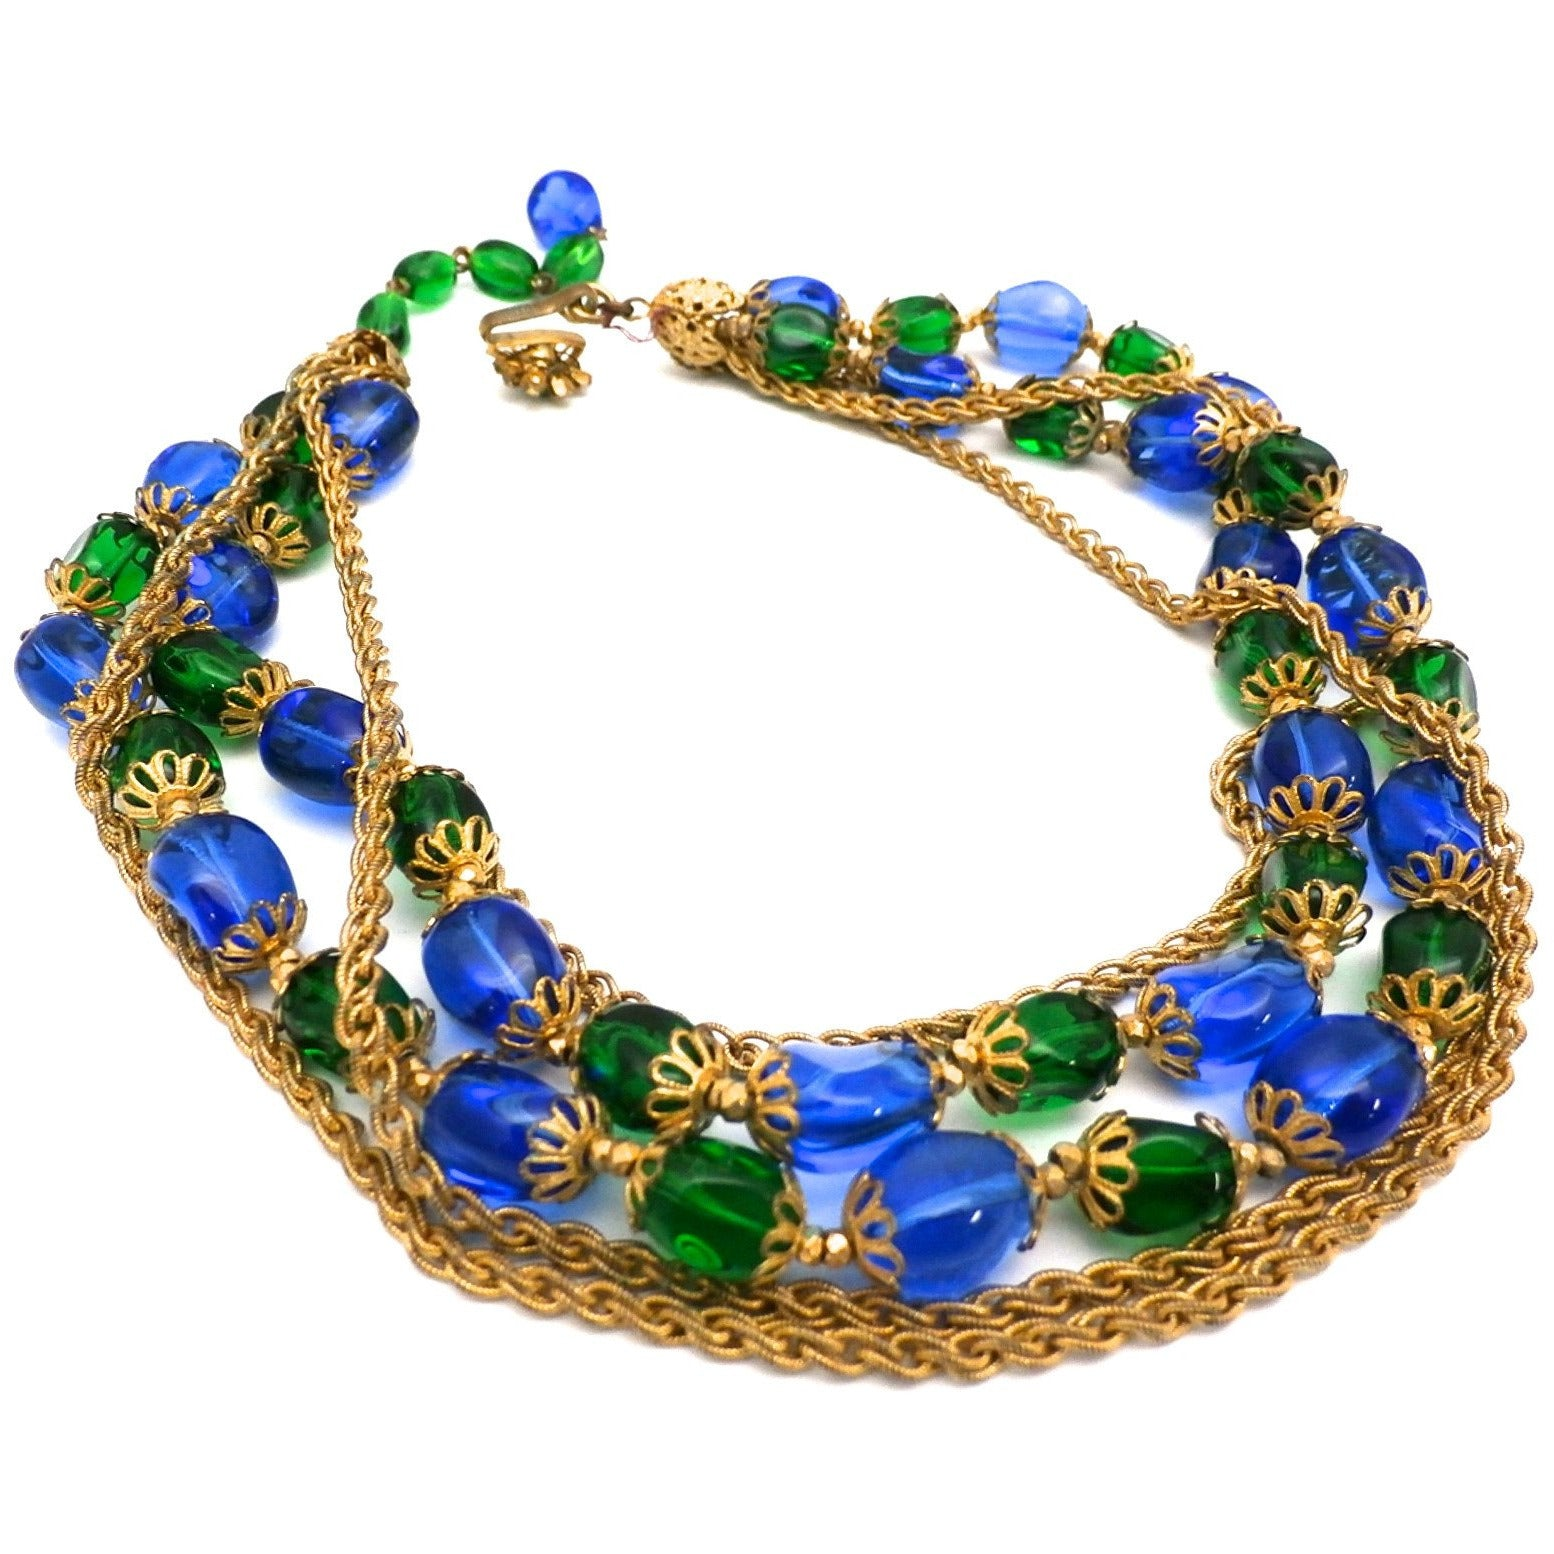 Stunning Vintage Hattie Carnegie Necklace Electric Blue & Green Baroque Beads Gold Findings 1950s - The Best Vintage Clothing  - 1